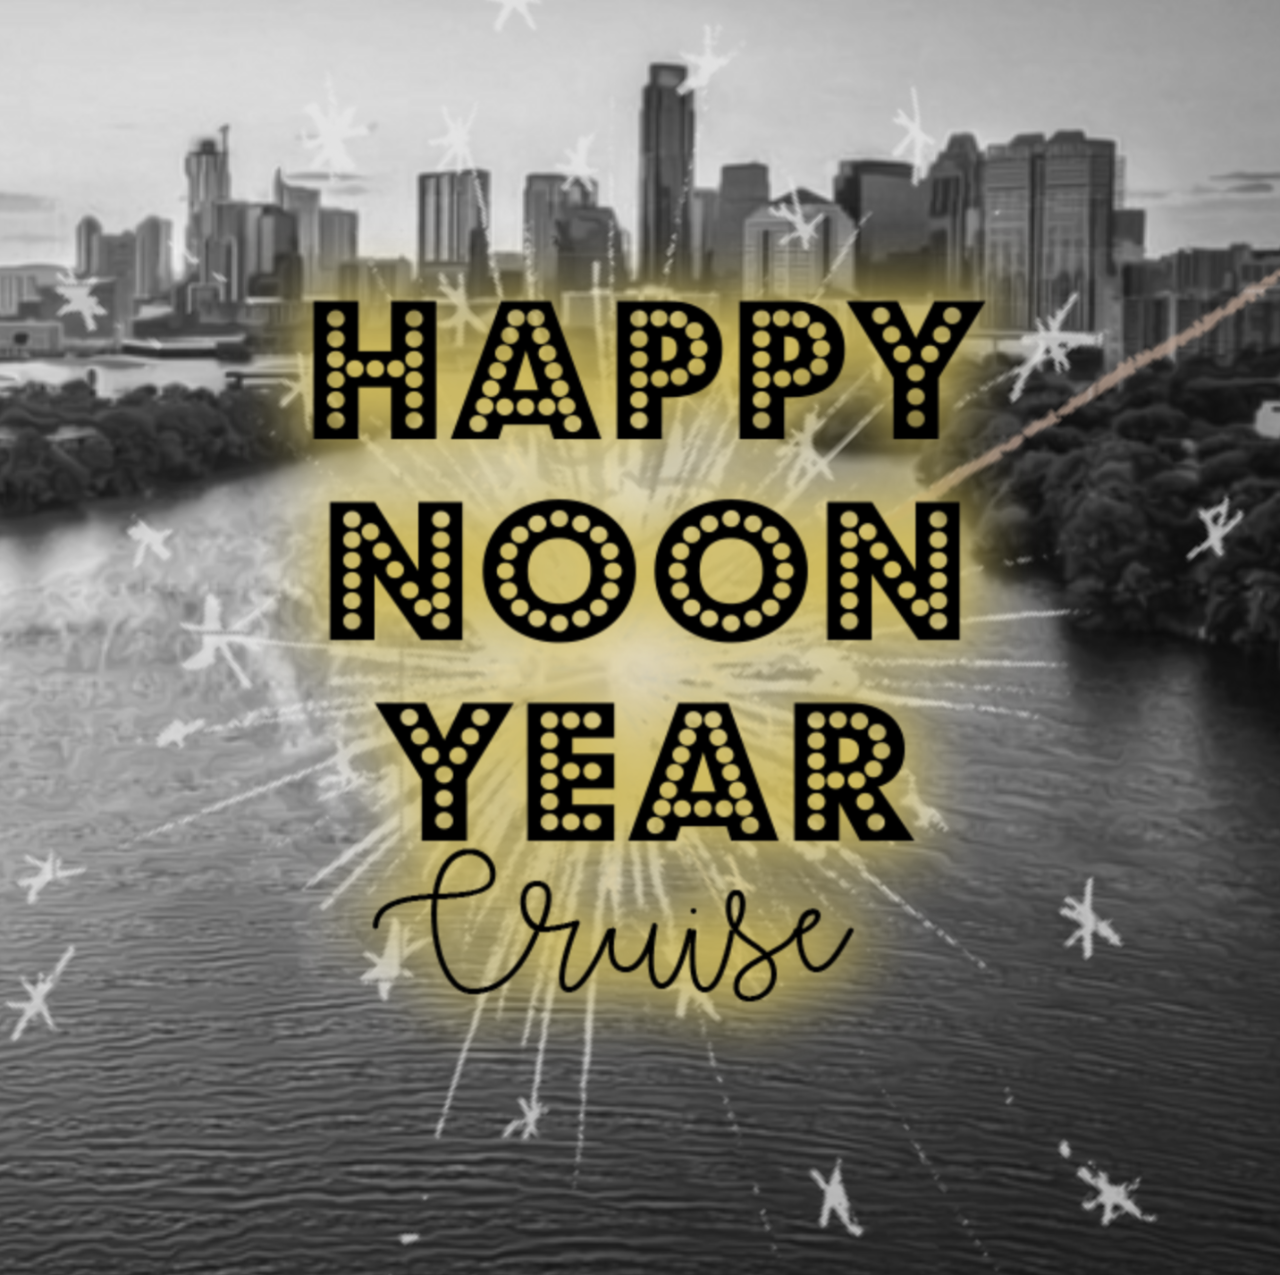 HAPPY NOON YEAR CRUISE!